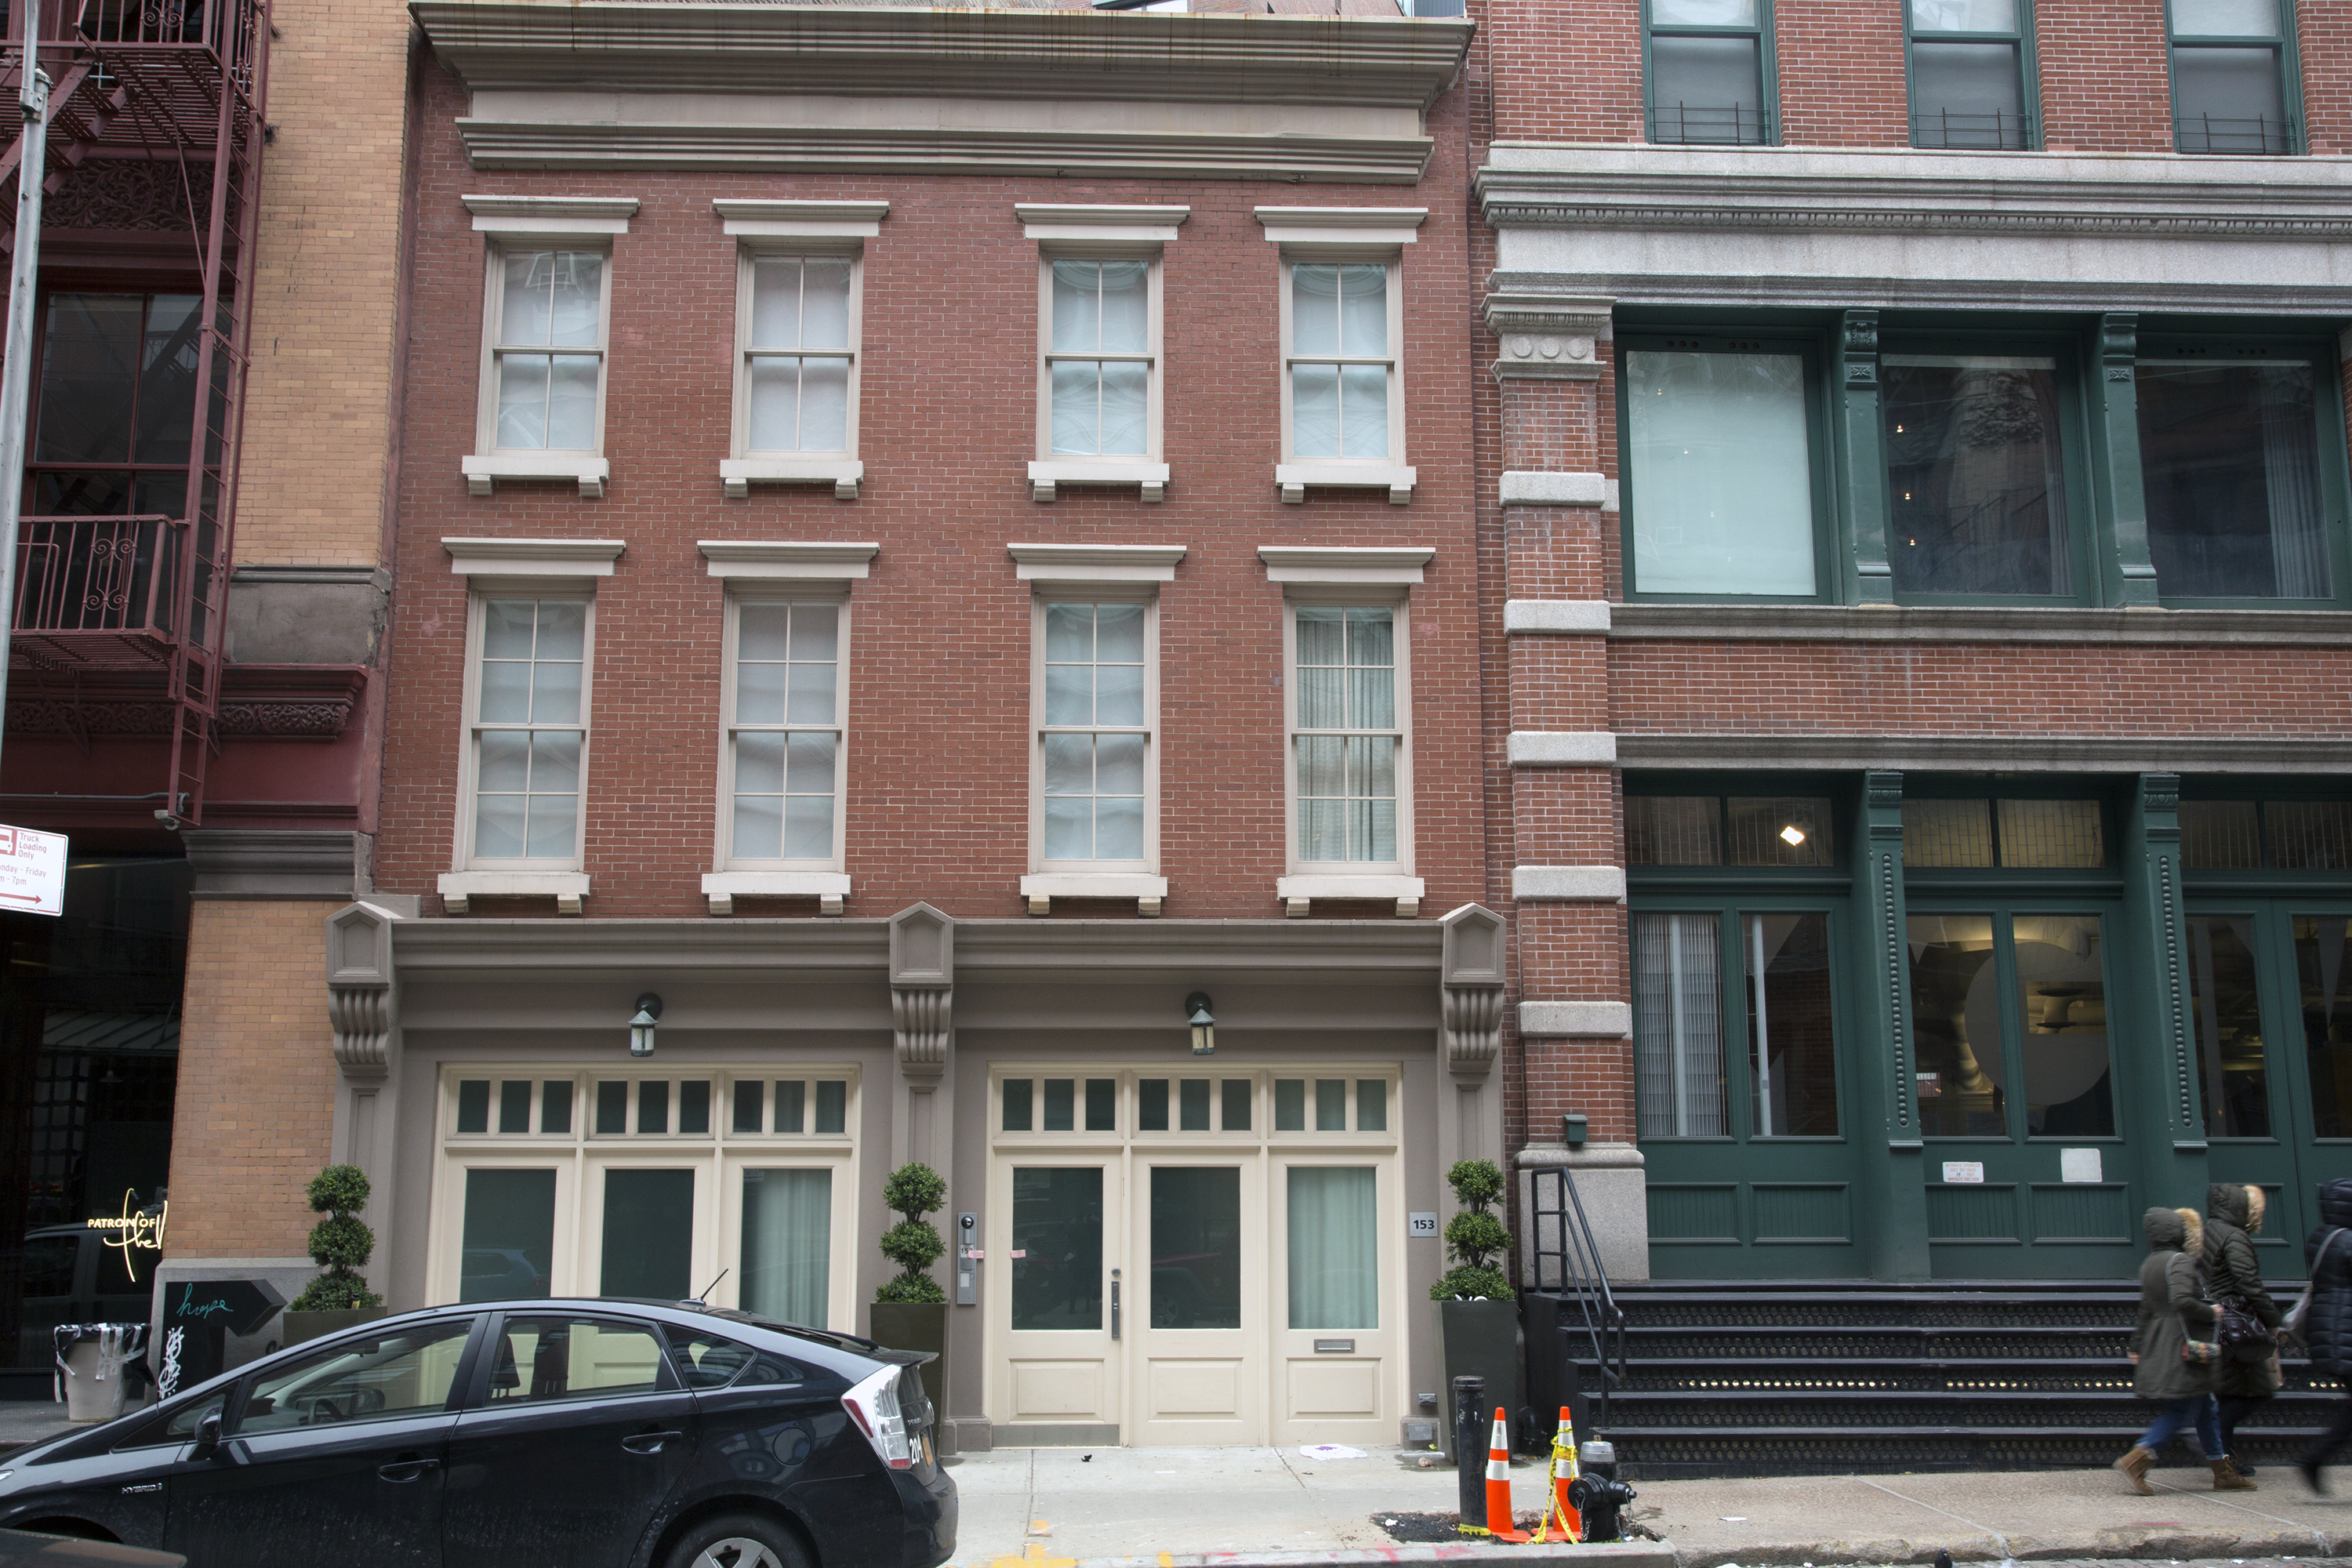 Two buildings in which Taylor Swift owns property on Franklin Street in Manhattan's Tribeca neighborhood. Swift owns several apartments in 155 Franklin St., right, and the three-story townhouse at 153 Franklin St. next door.